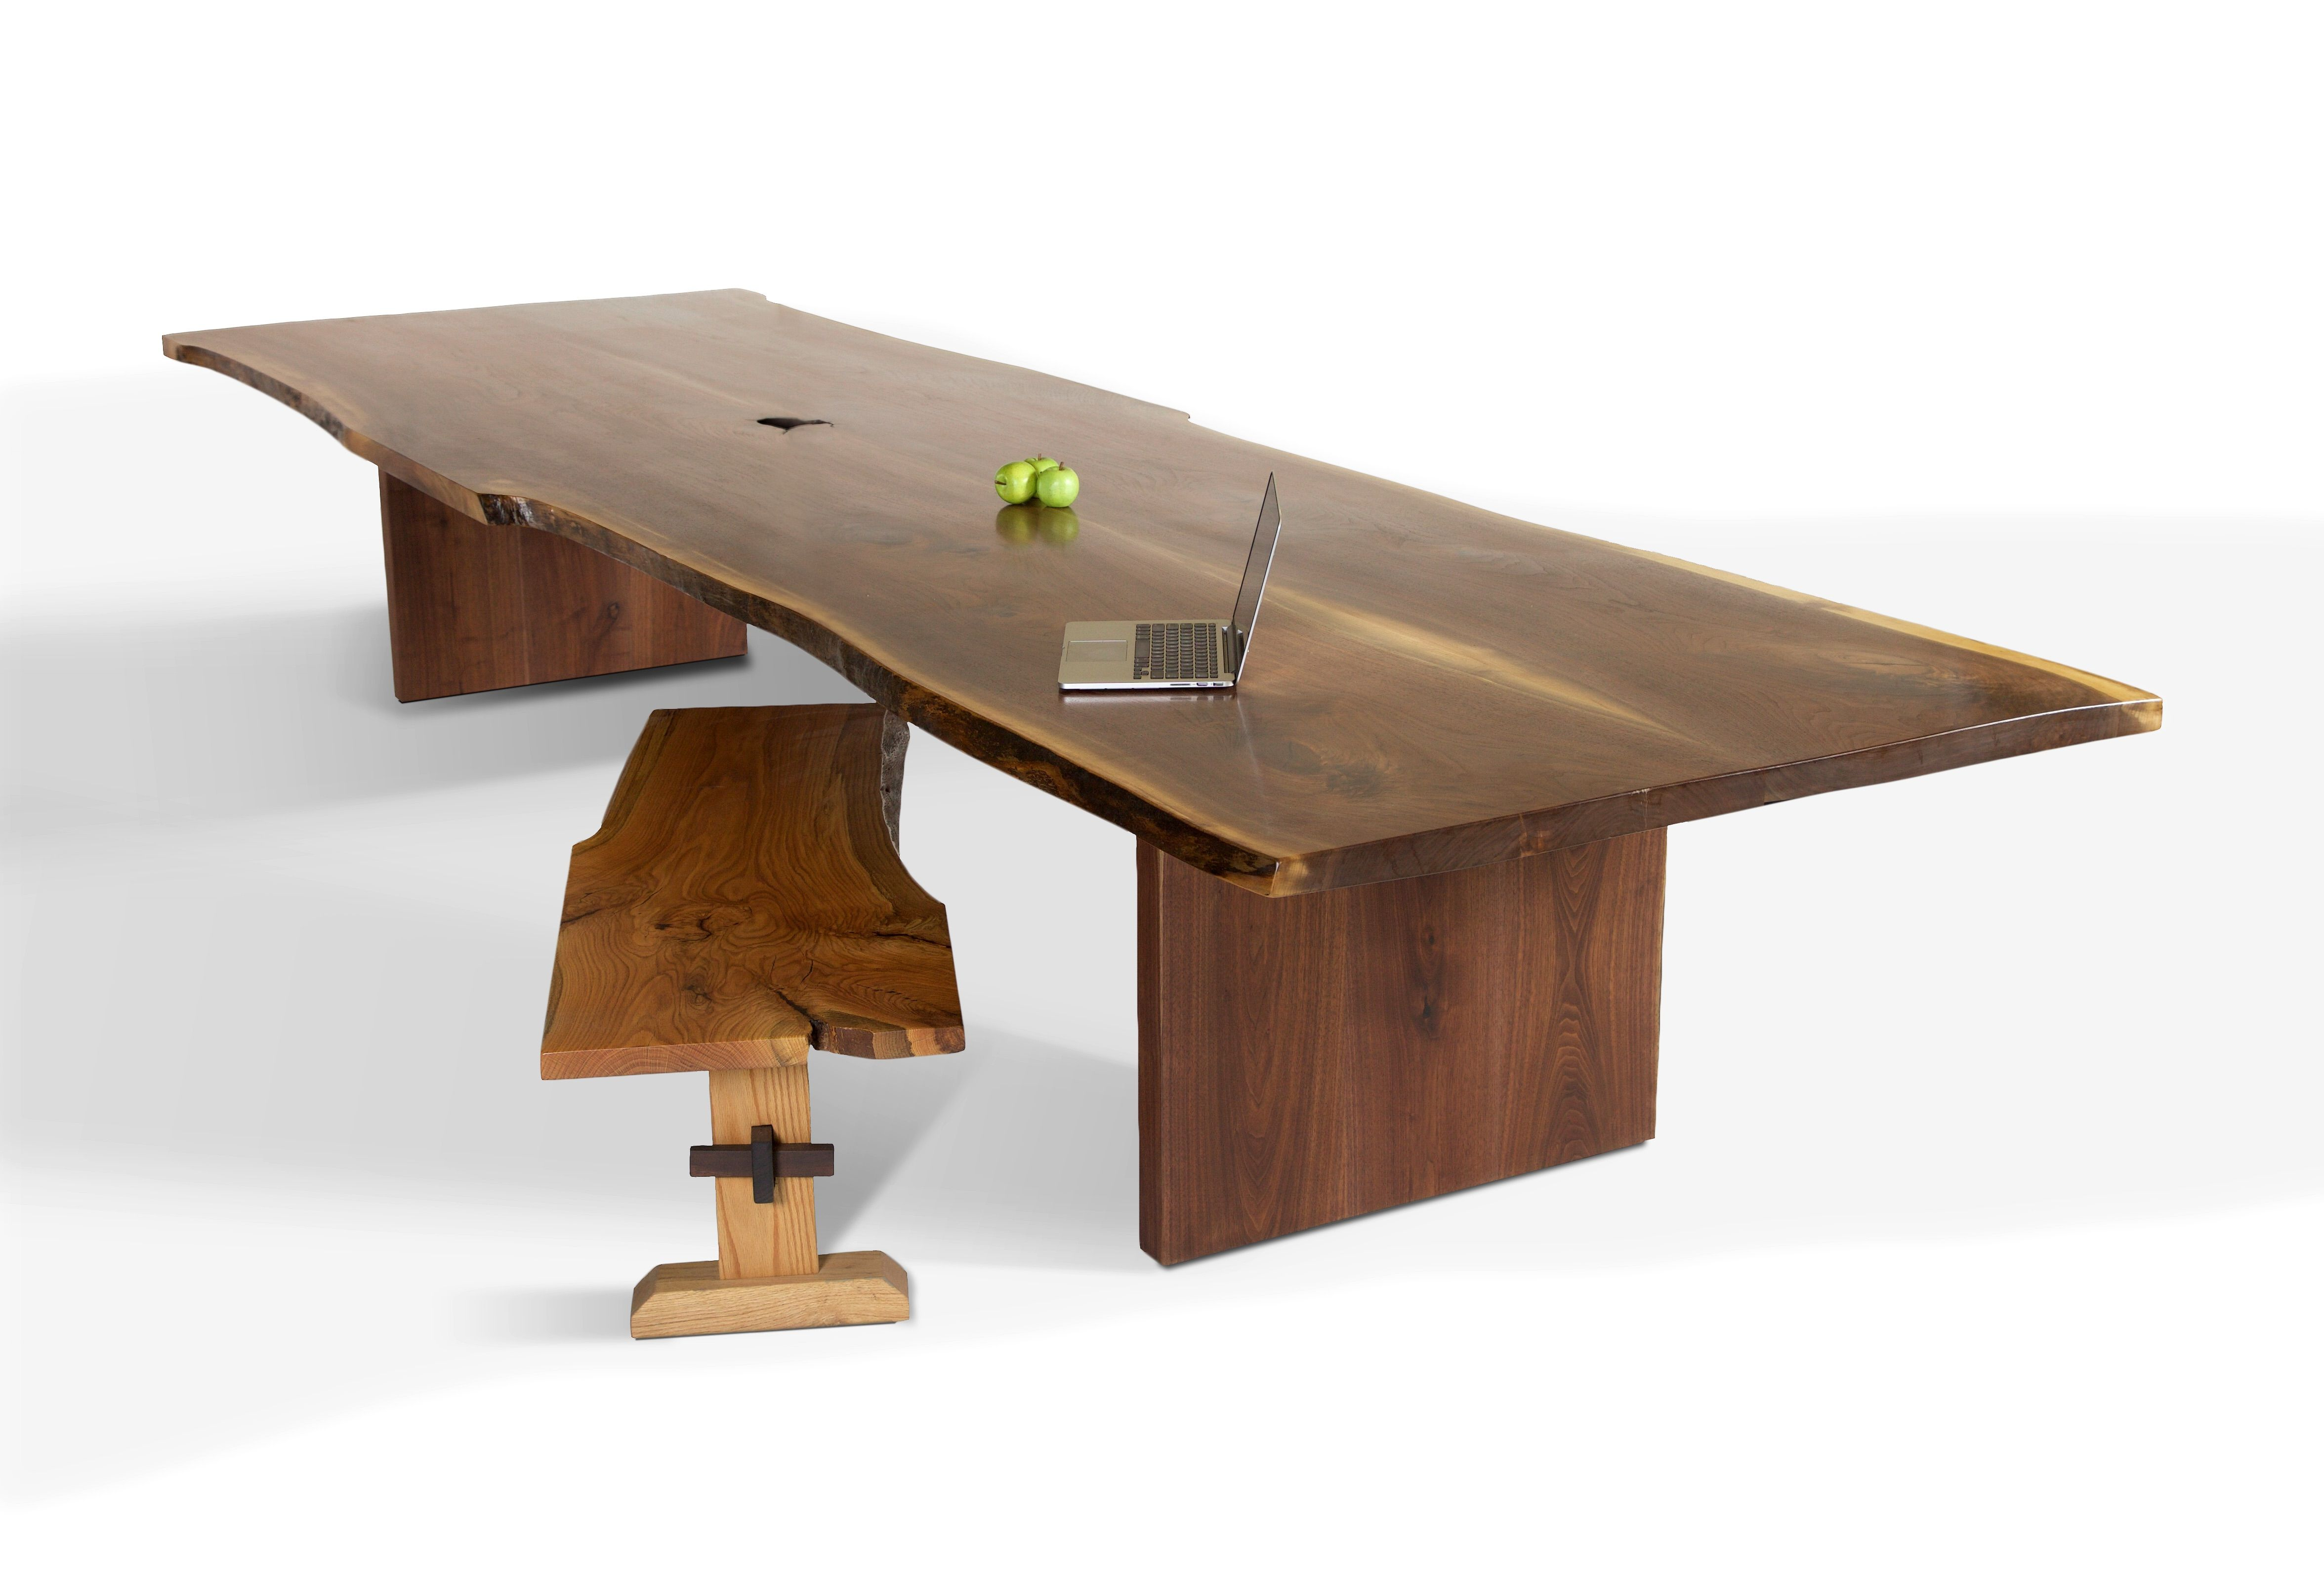 Live Edge Walnut Slab Dining Table With Square Aluminum Legs -